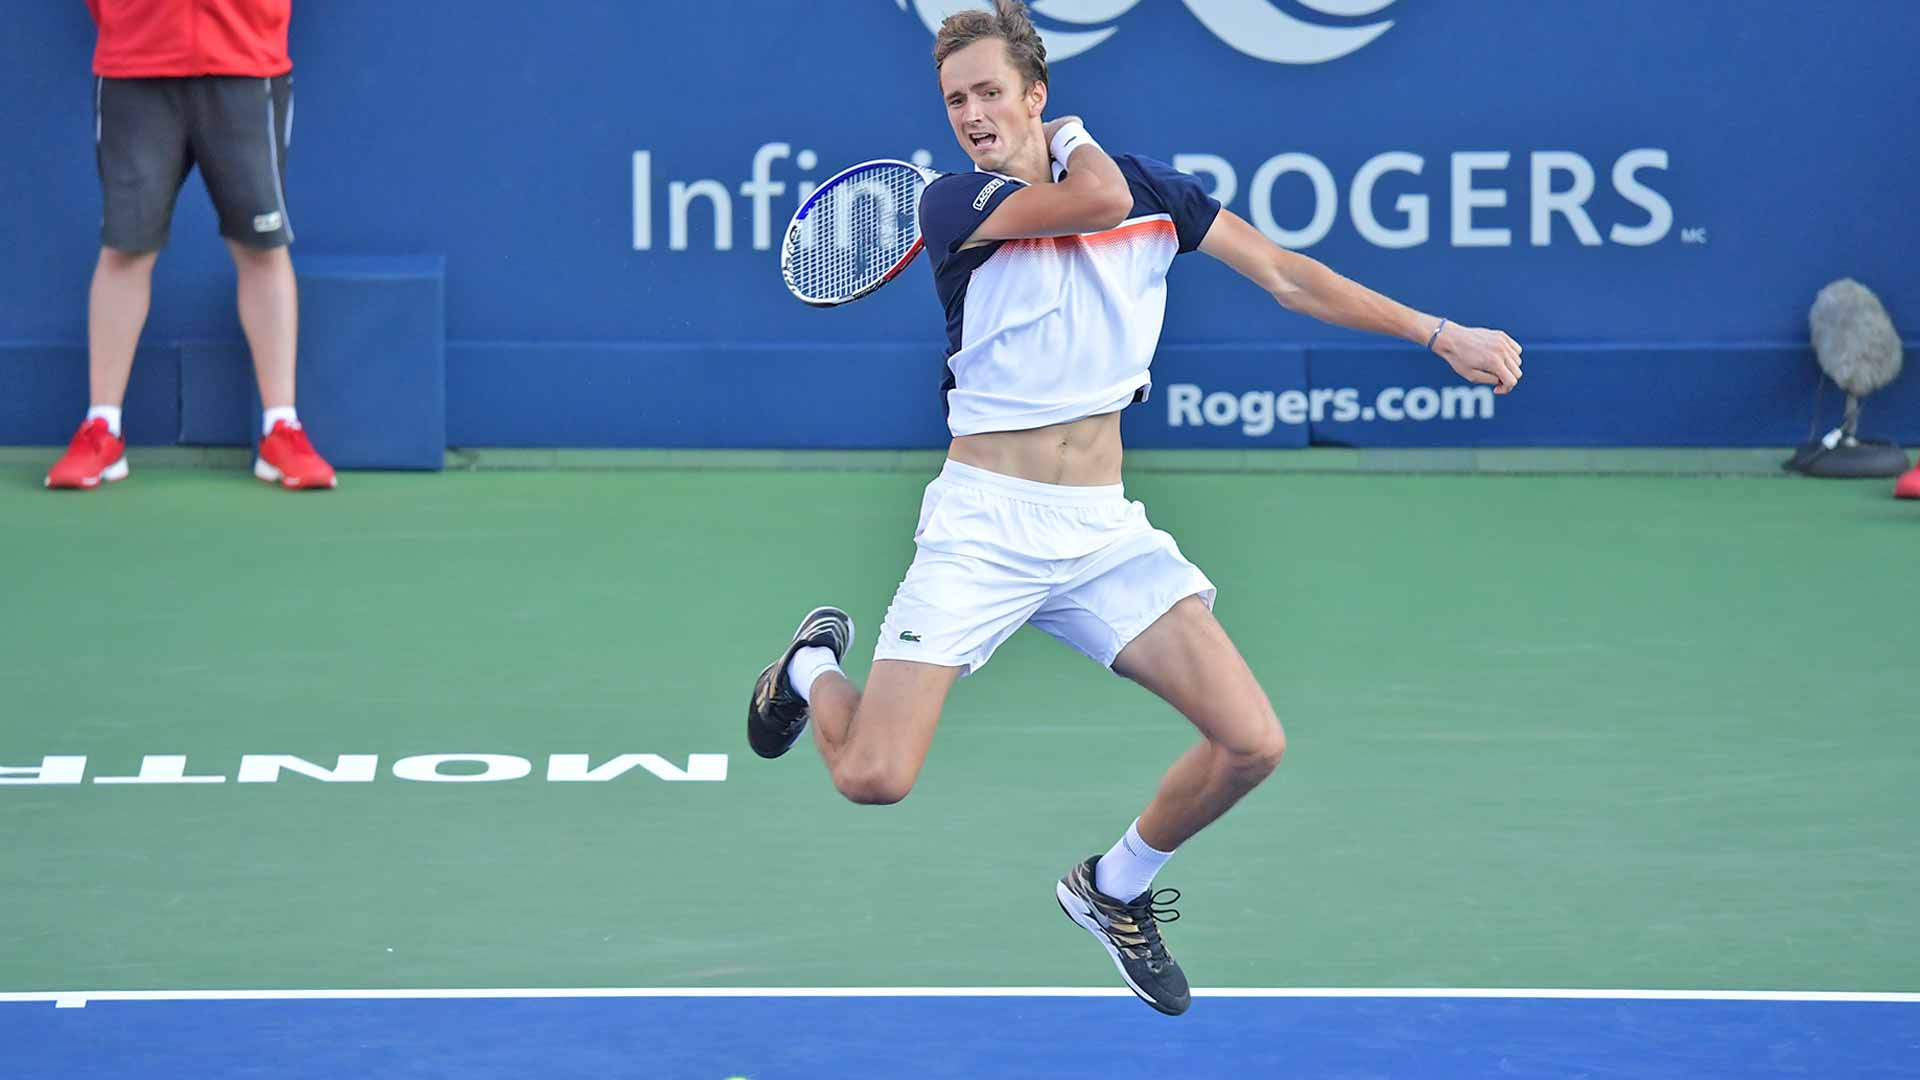 <a href='https://www.atptour.com/en/players/daniil-medvedev/mm58/overview'>Daniil Medvedev</a> faces <a href='https://www.atptour.com/en/players/karen-khachanov/ke29/overview'>Karen Khachanov</a> during the <a href='https://www.atptour.com/en/tournaments/montreal/421/overview'>Coupe Rogers</a> semi-finals on Saturday